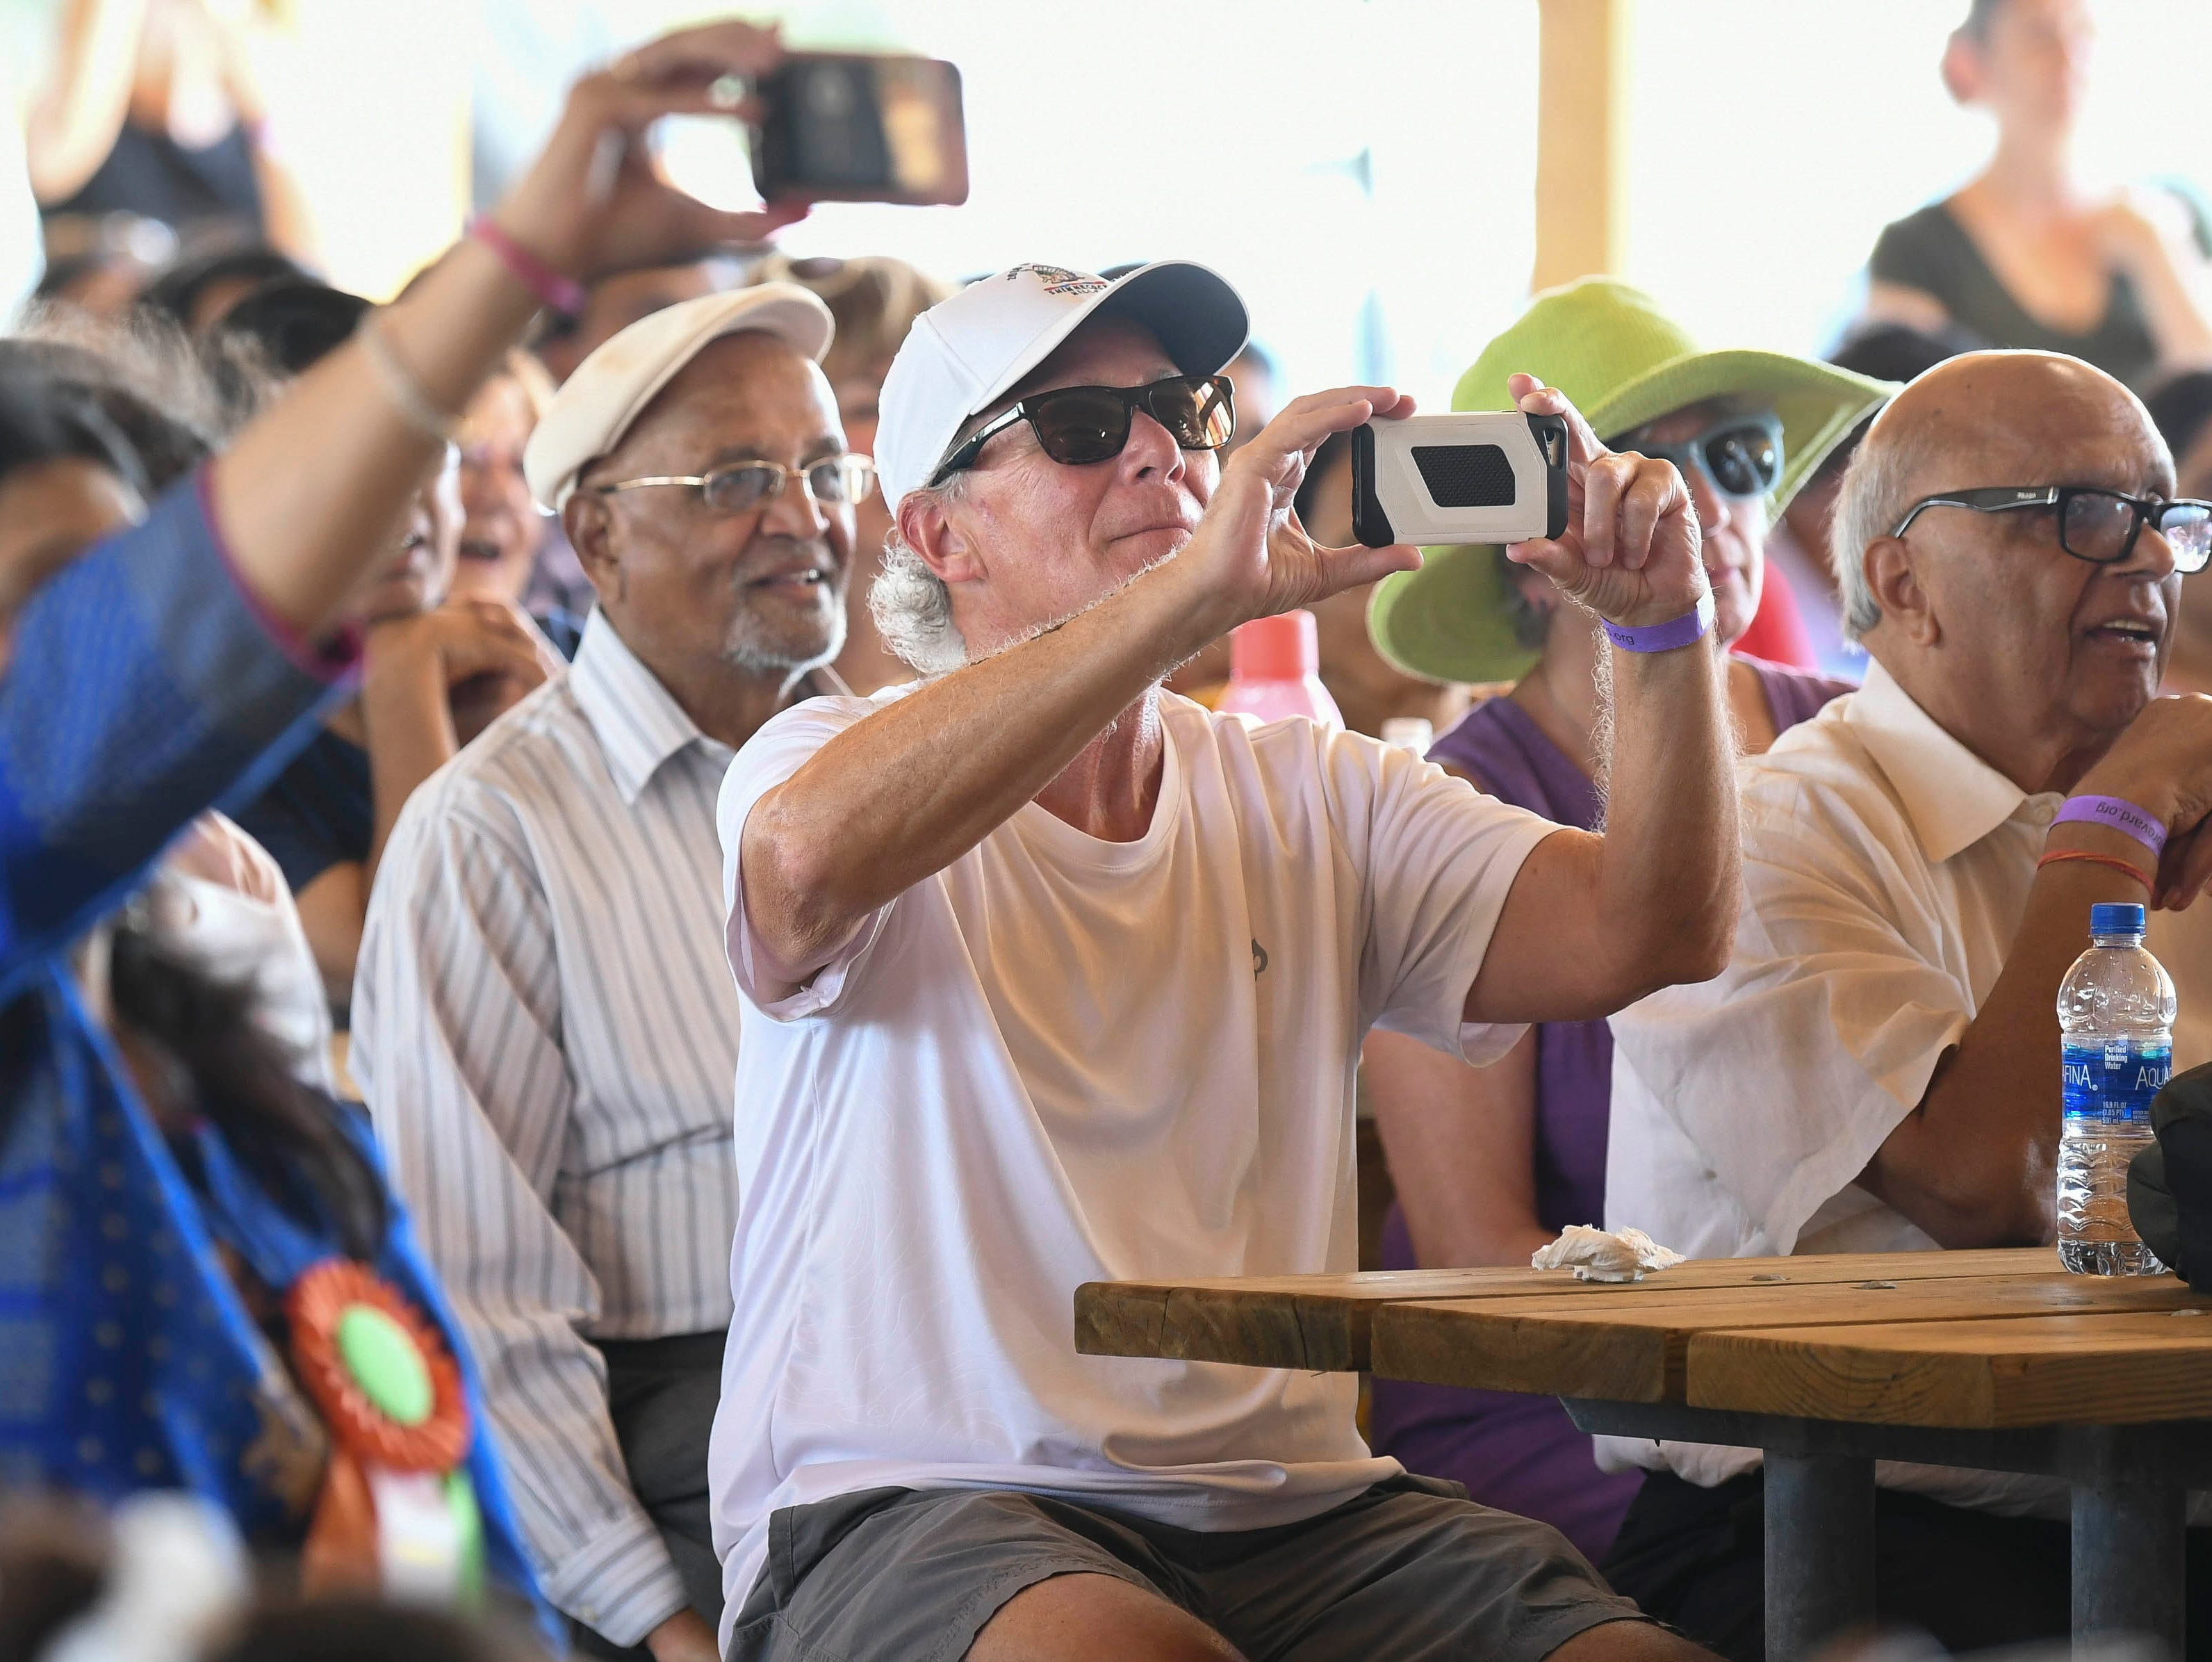 Spectators take pictures of the performers on stage at Indiafest Saturday at Wickham Park's main pavilion.